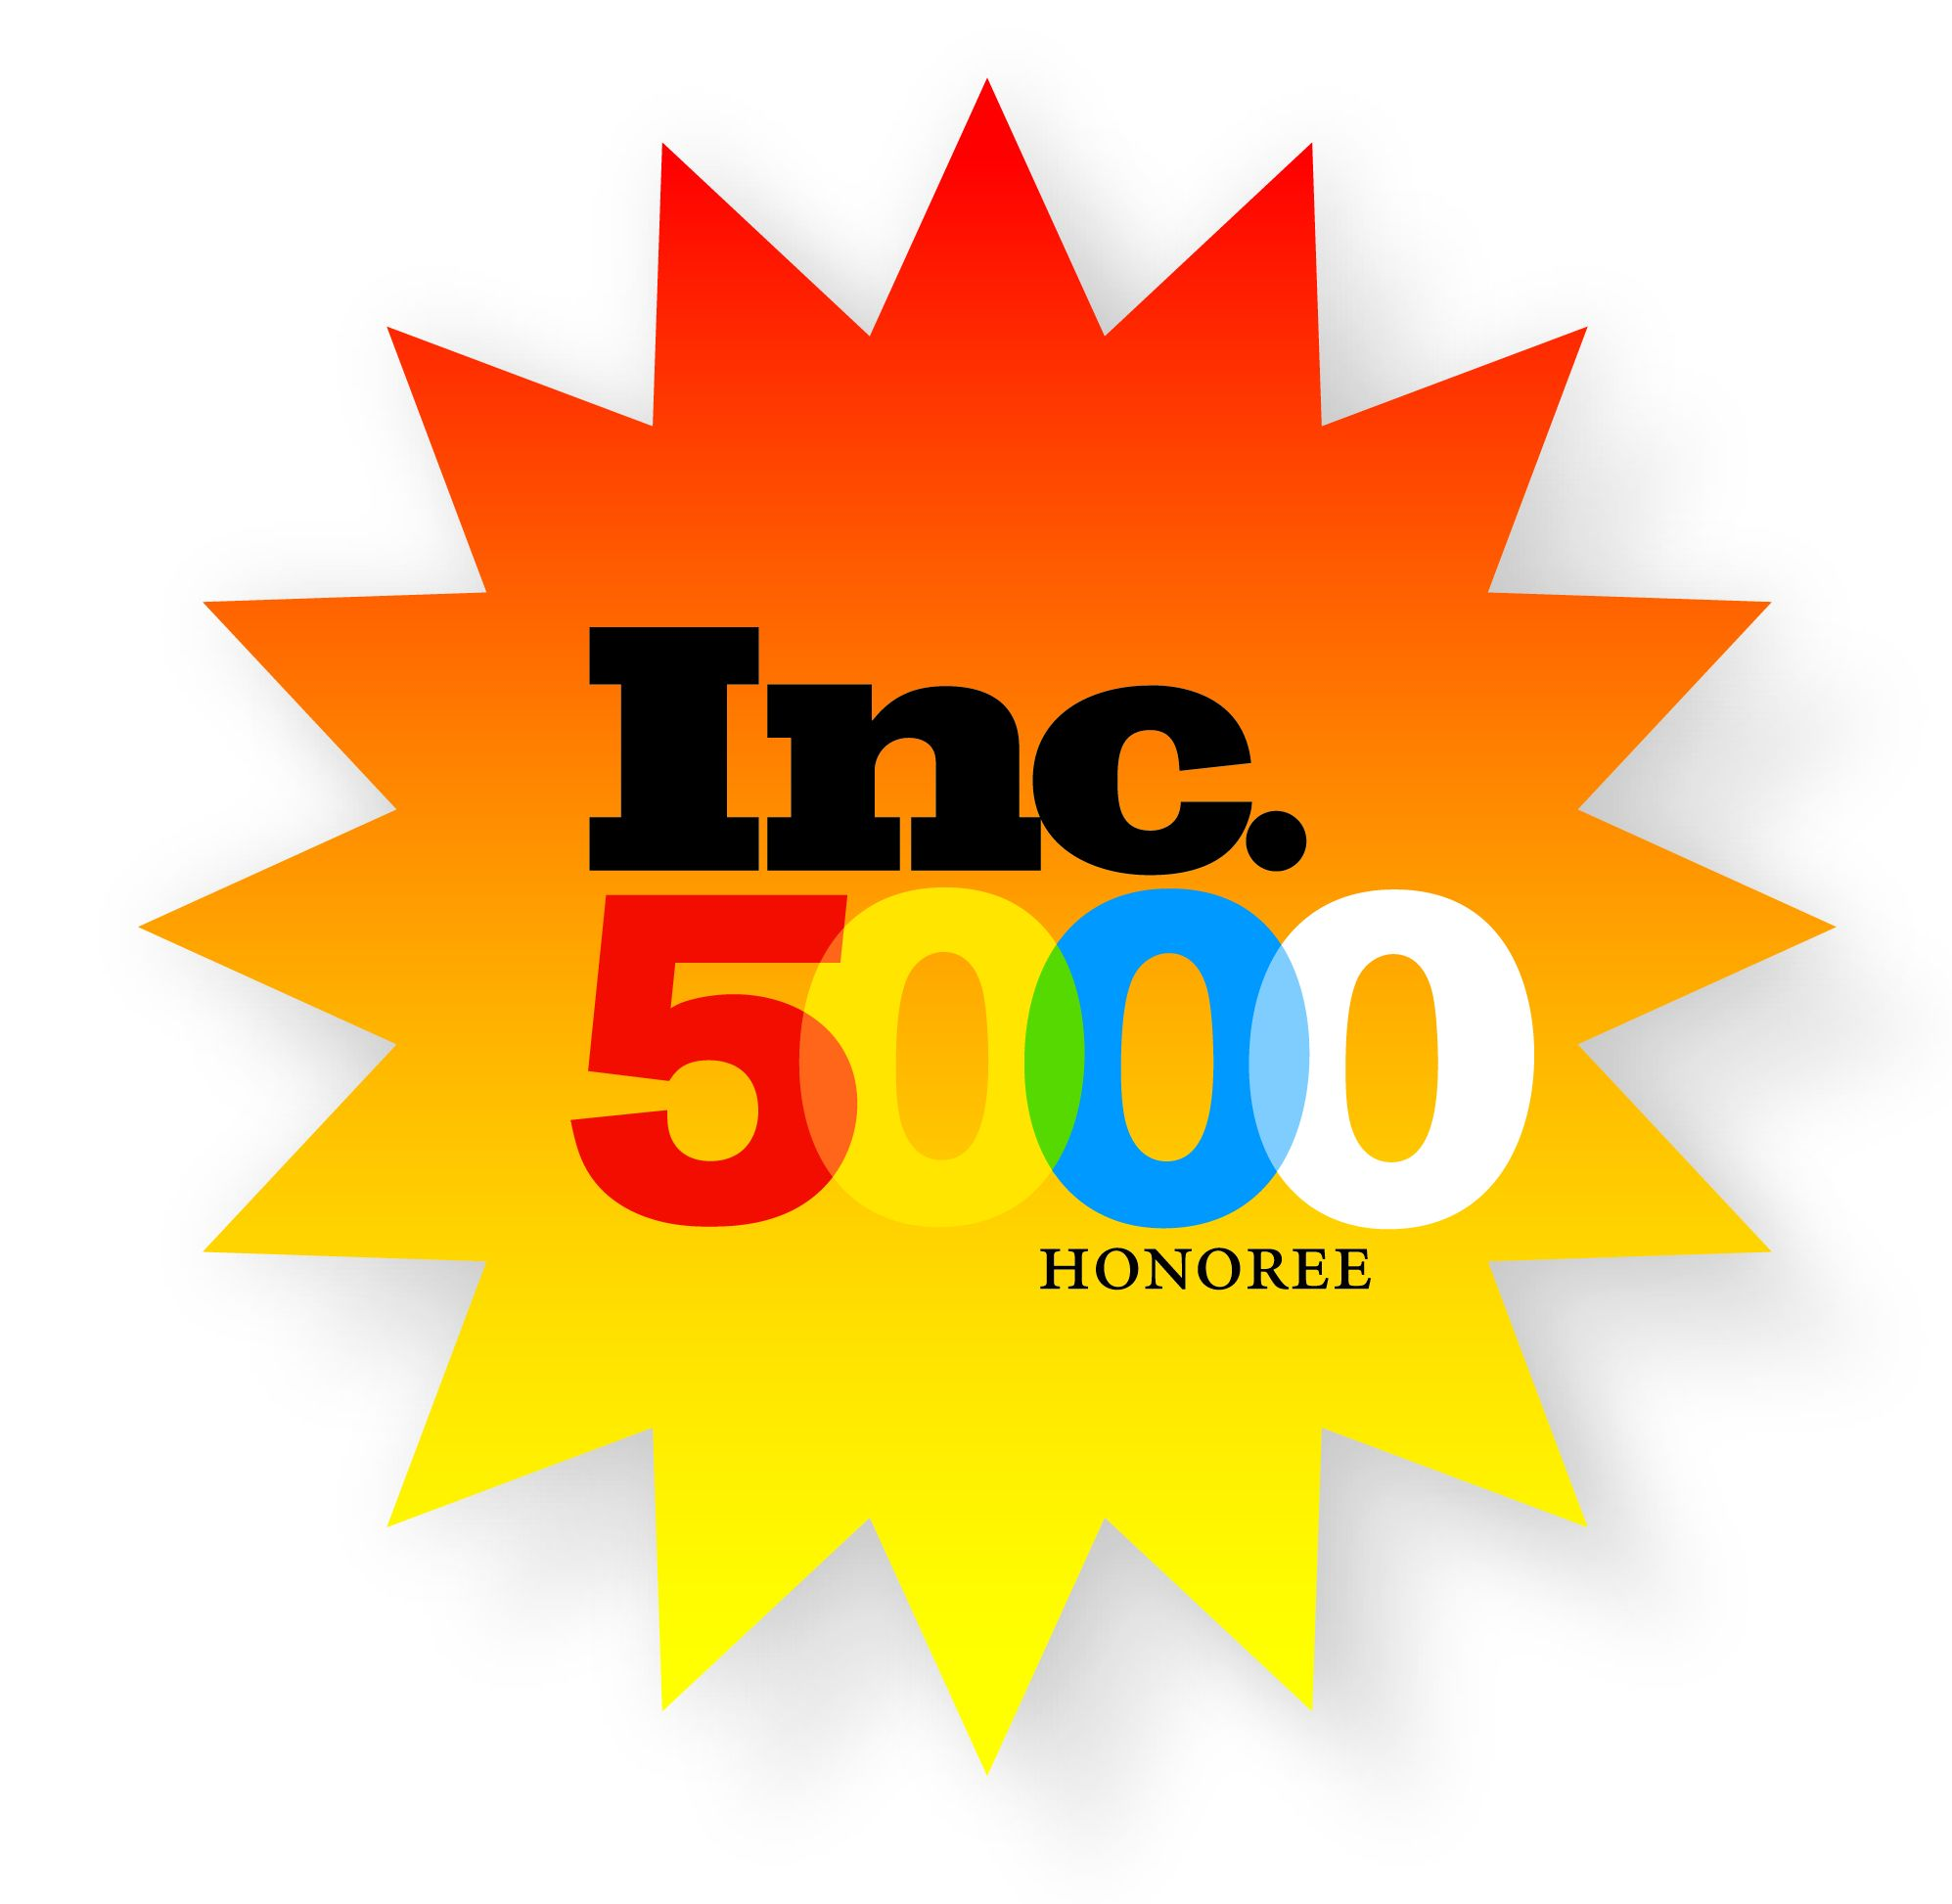 Nickell Rental lands on the honorable Inc 5000 list for the third year in a row.